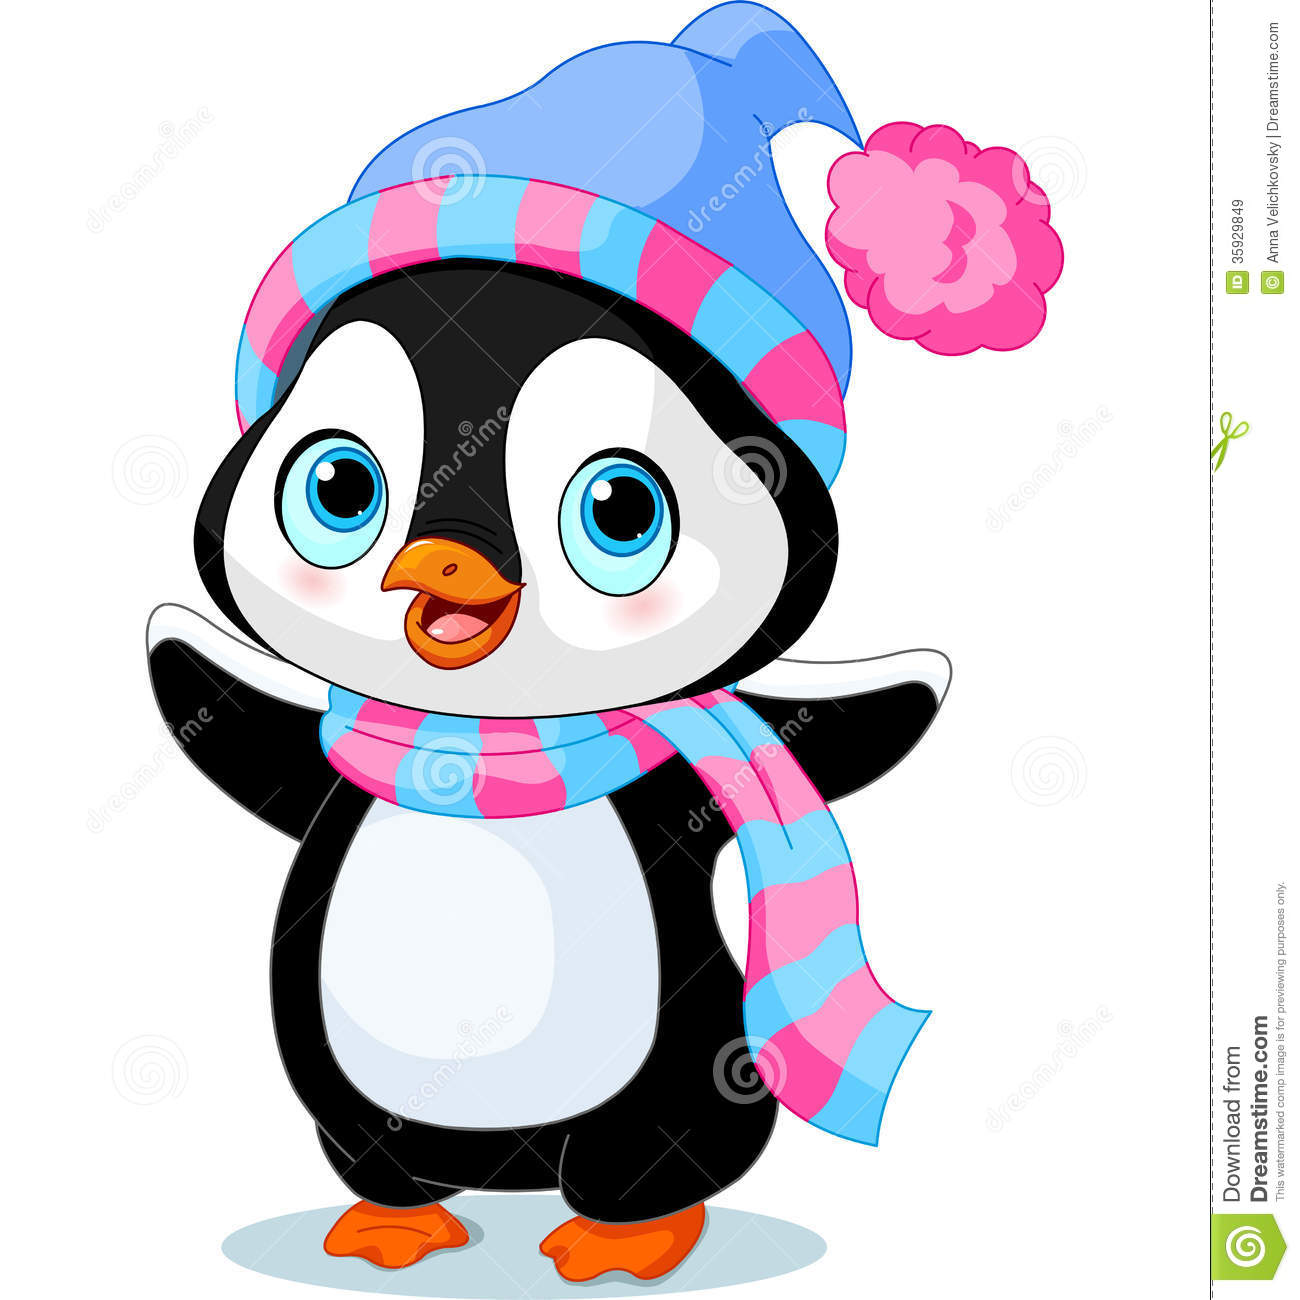 Cute Winter Penguin Royalty Free Stock Images   Image  35929849